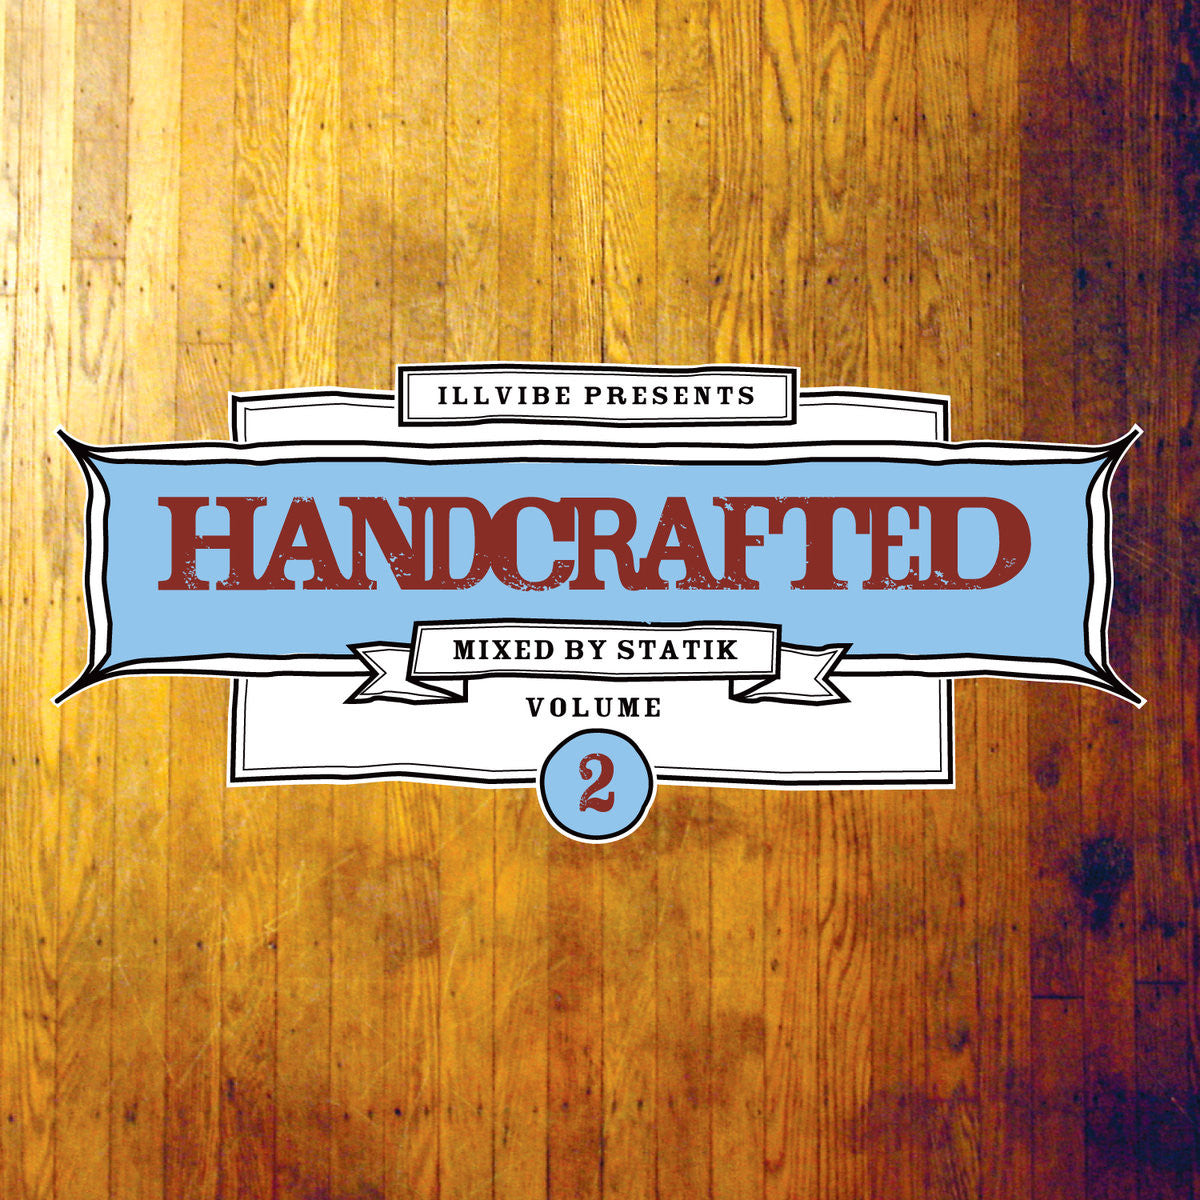 Illvibe Collective - Handcrafted Volume 2, Mixed CD - The Giant Peach